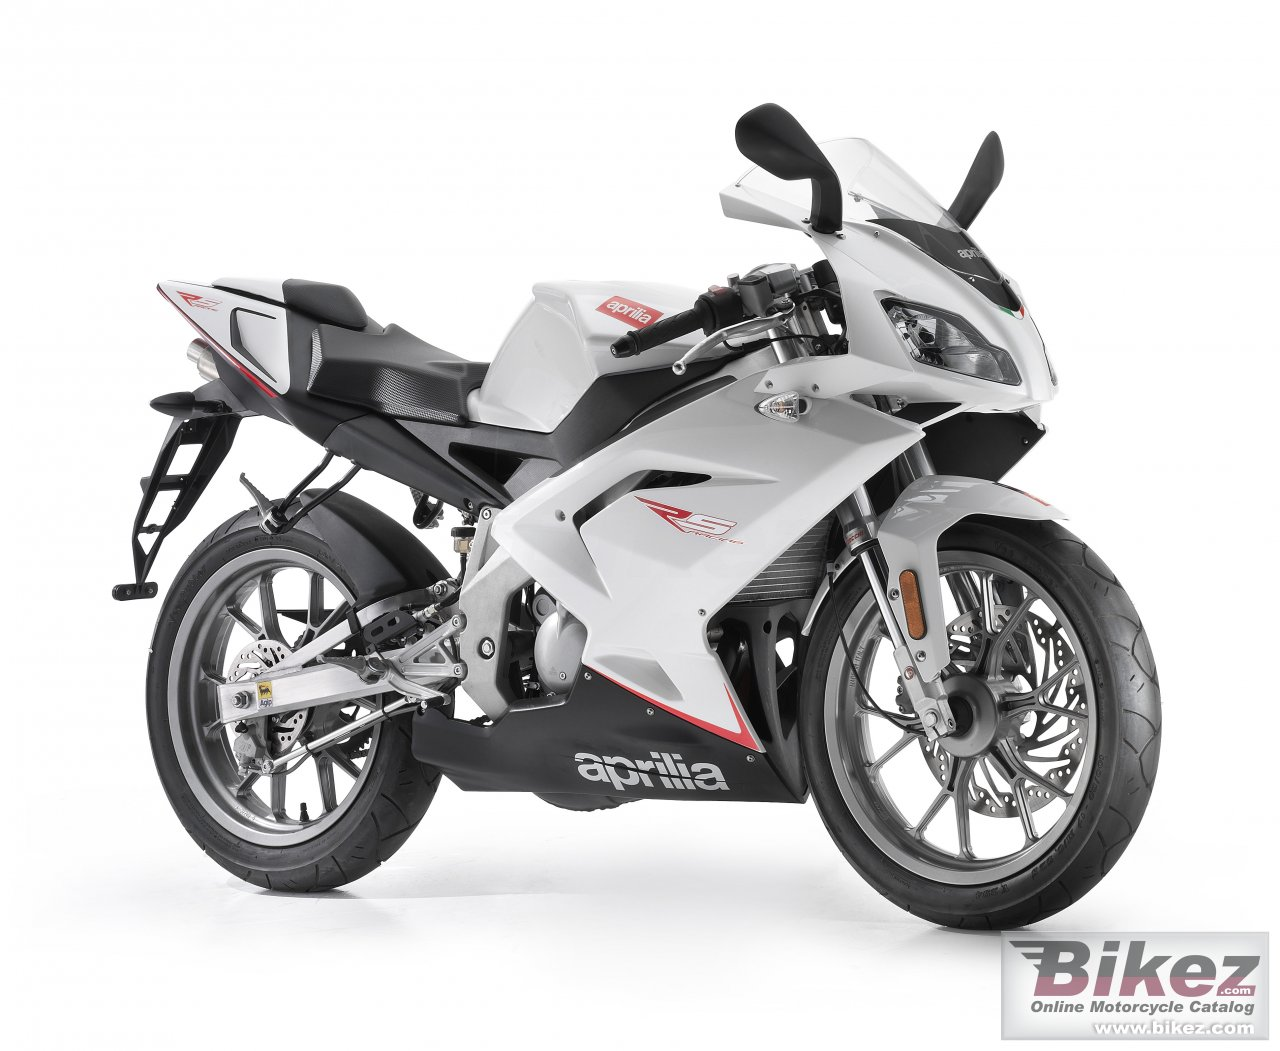 Big Aprilia rs 50 picture and wallpaper from Bikez.com